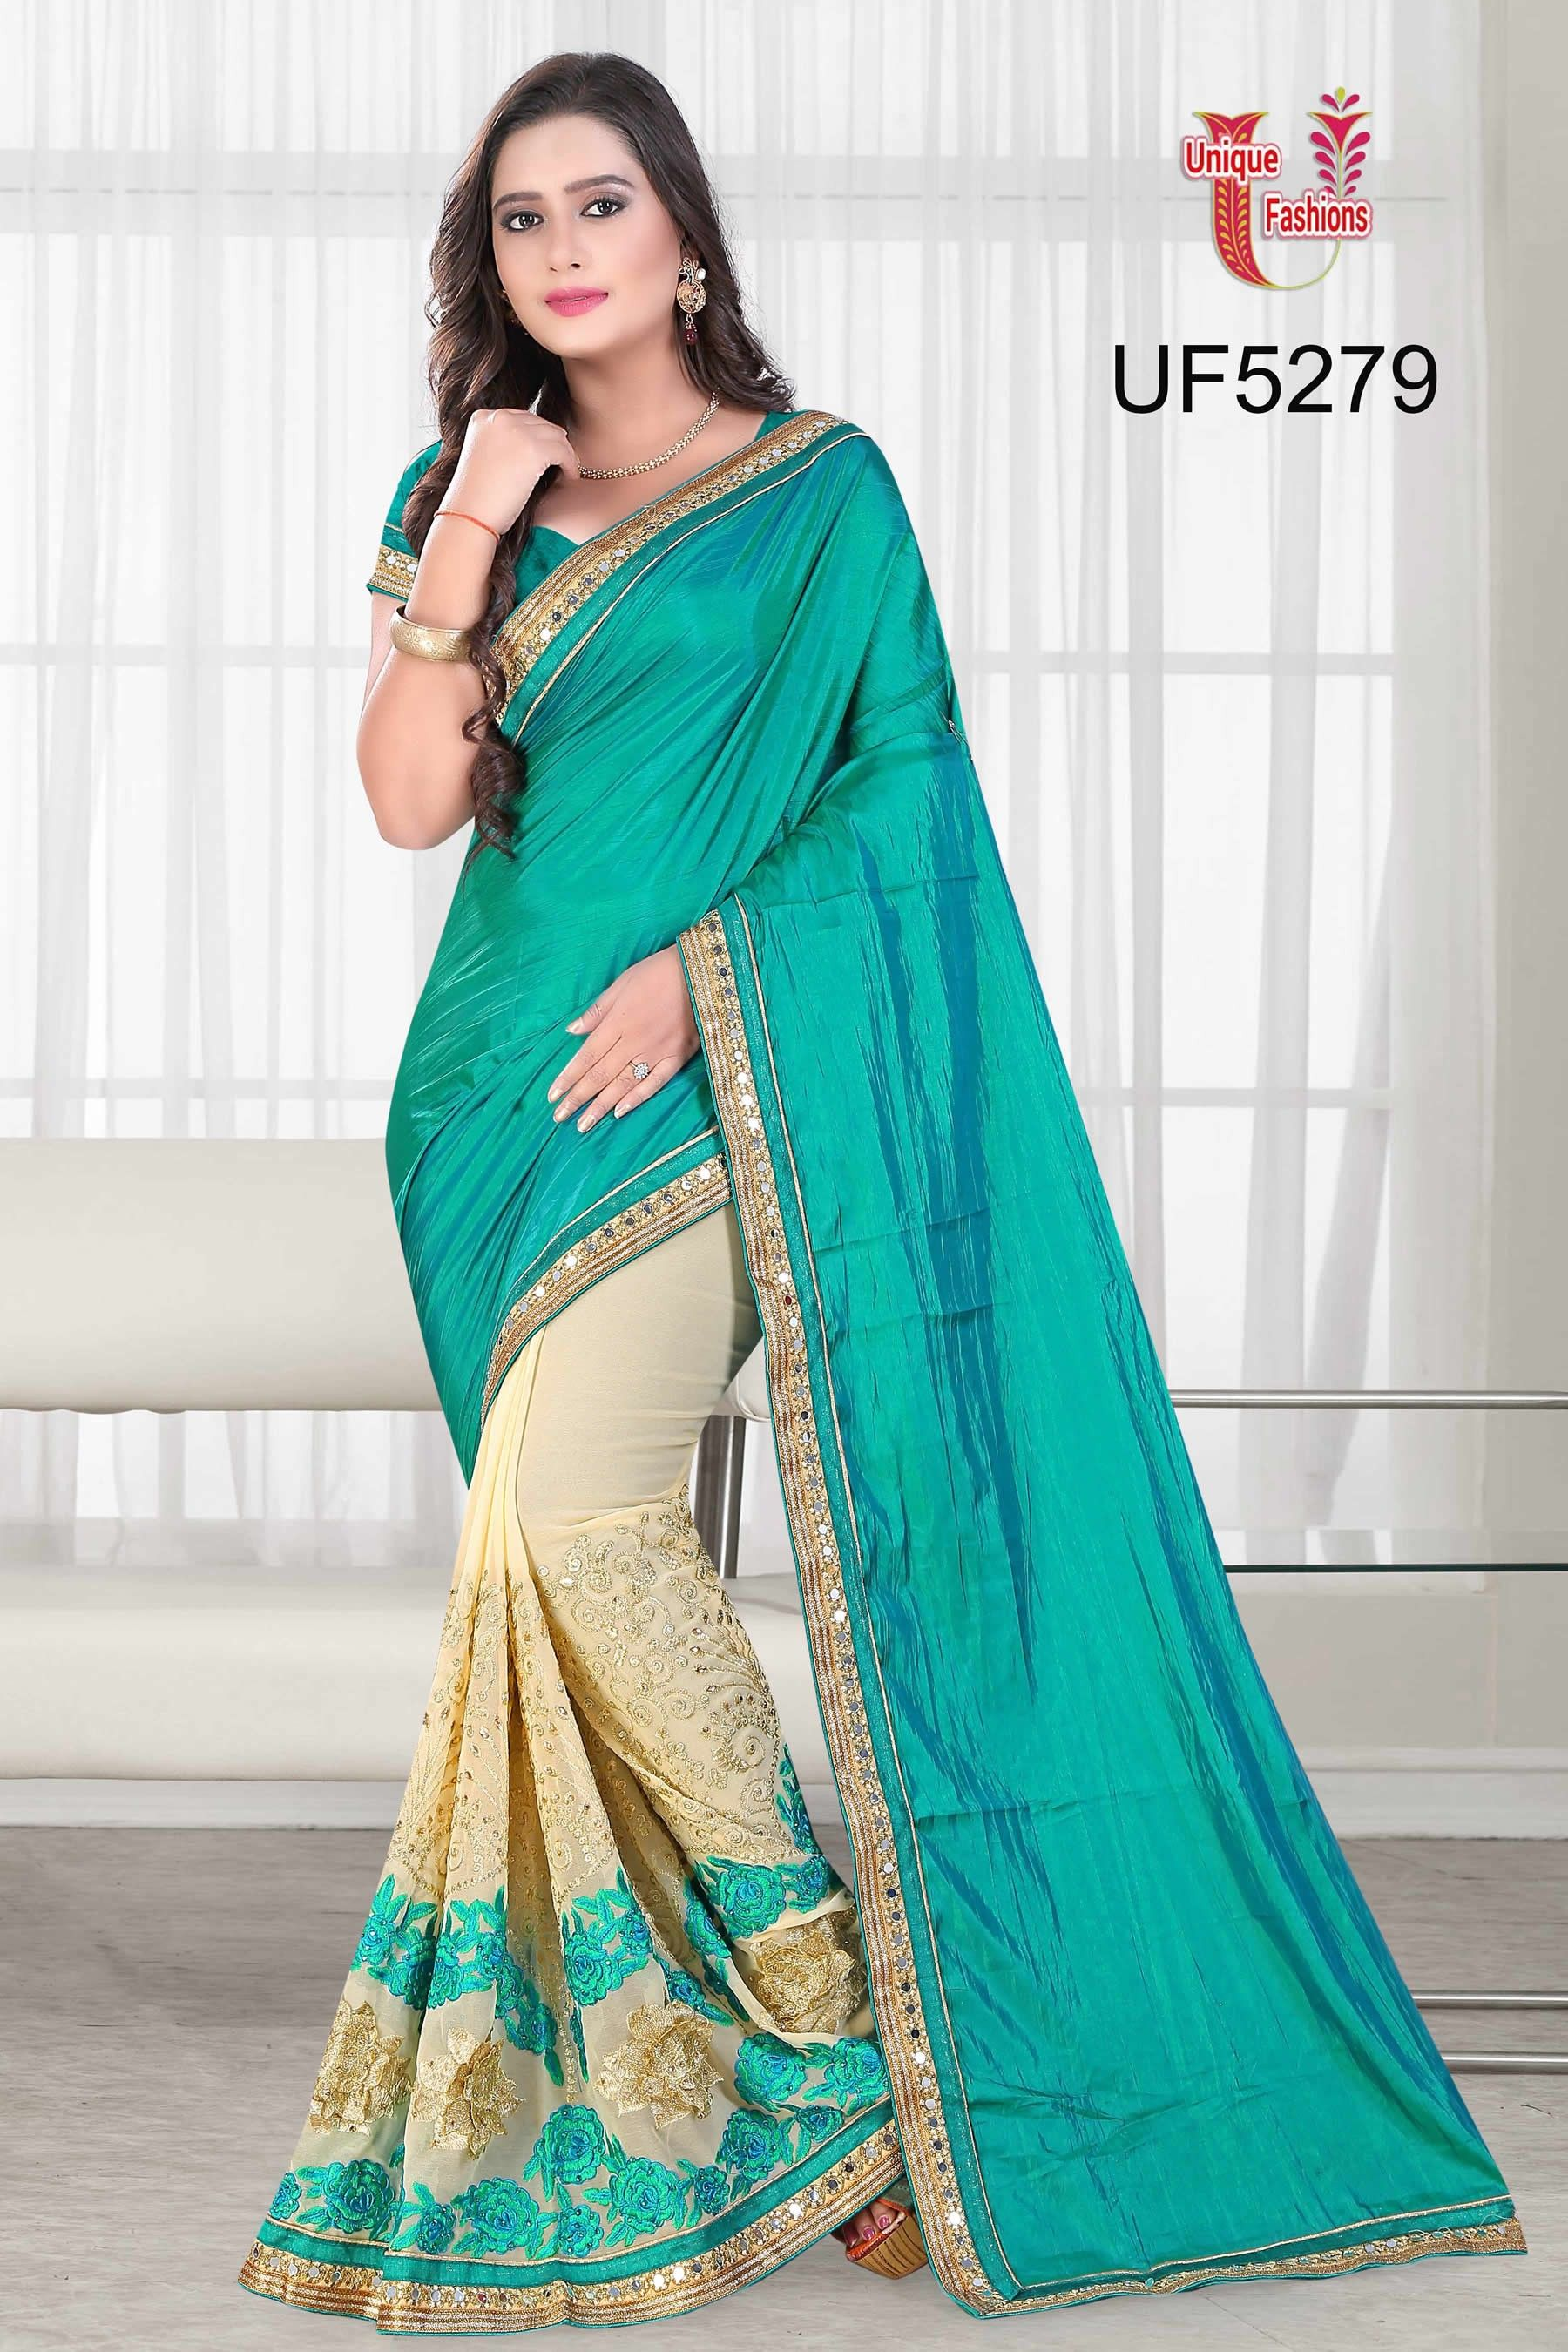 2127c8cef5 buy saree online Sea Green and Cream Colour Silk and Georgette Party Wear  Saree Buy Saree online UK - Buy Sarees online